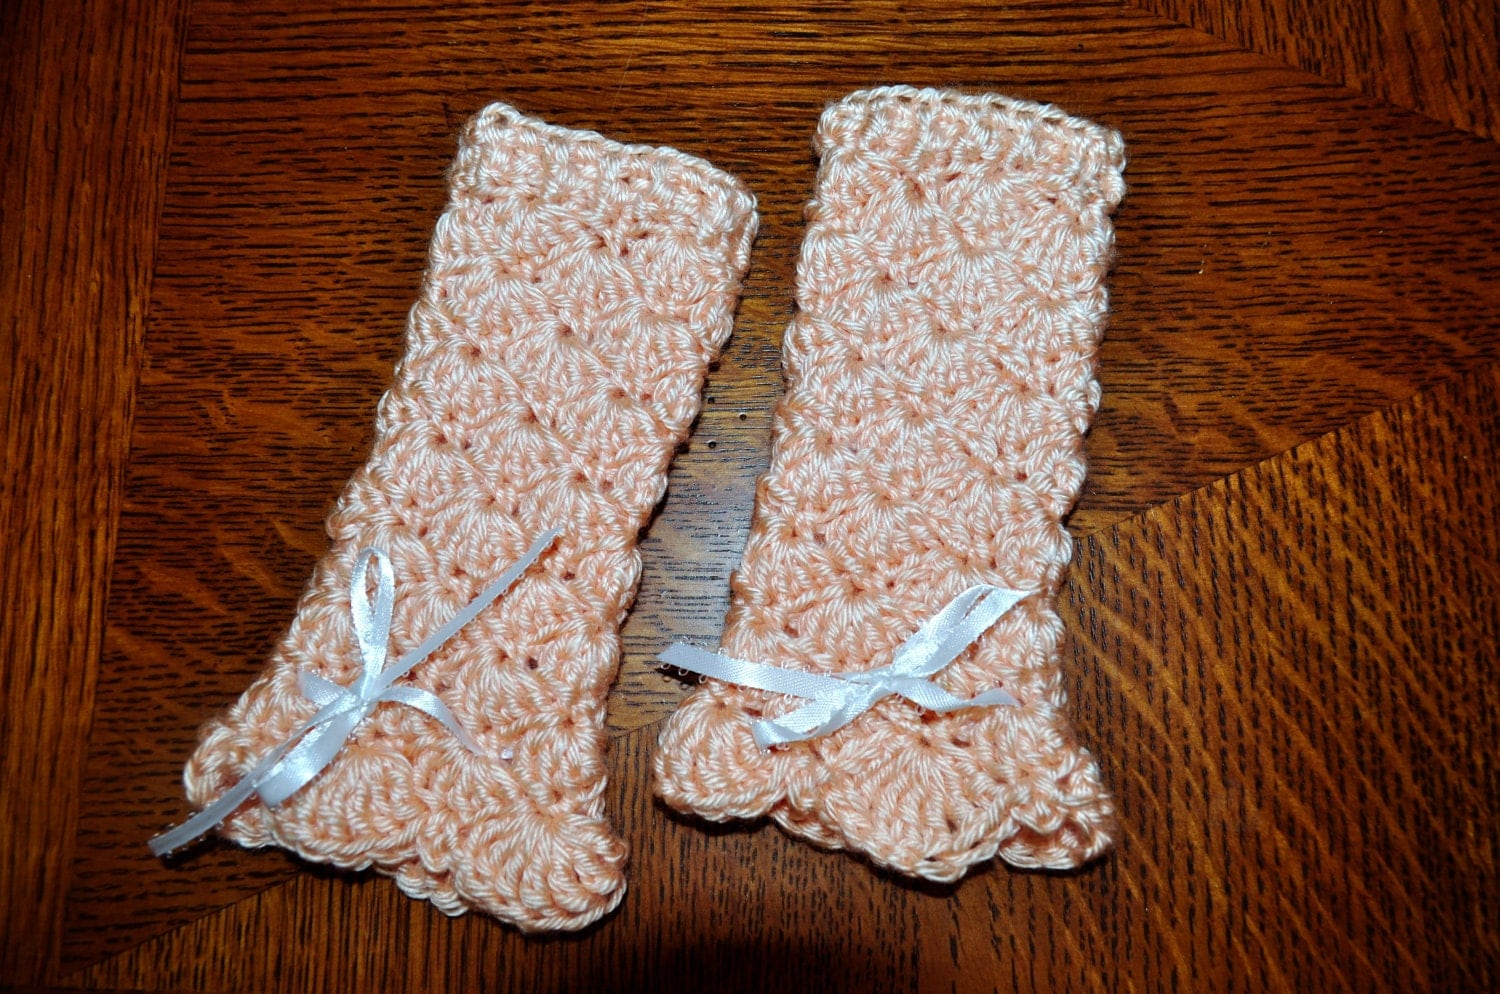 Free Crochet Patterns For Boot Warmers : Crochet Pattern PDF Warmers for Arms Boots Hands by ...